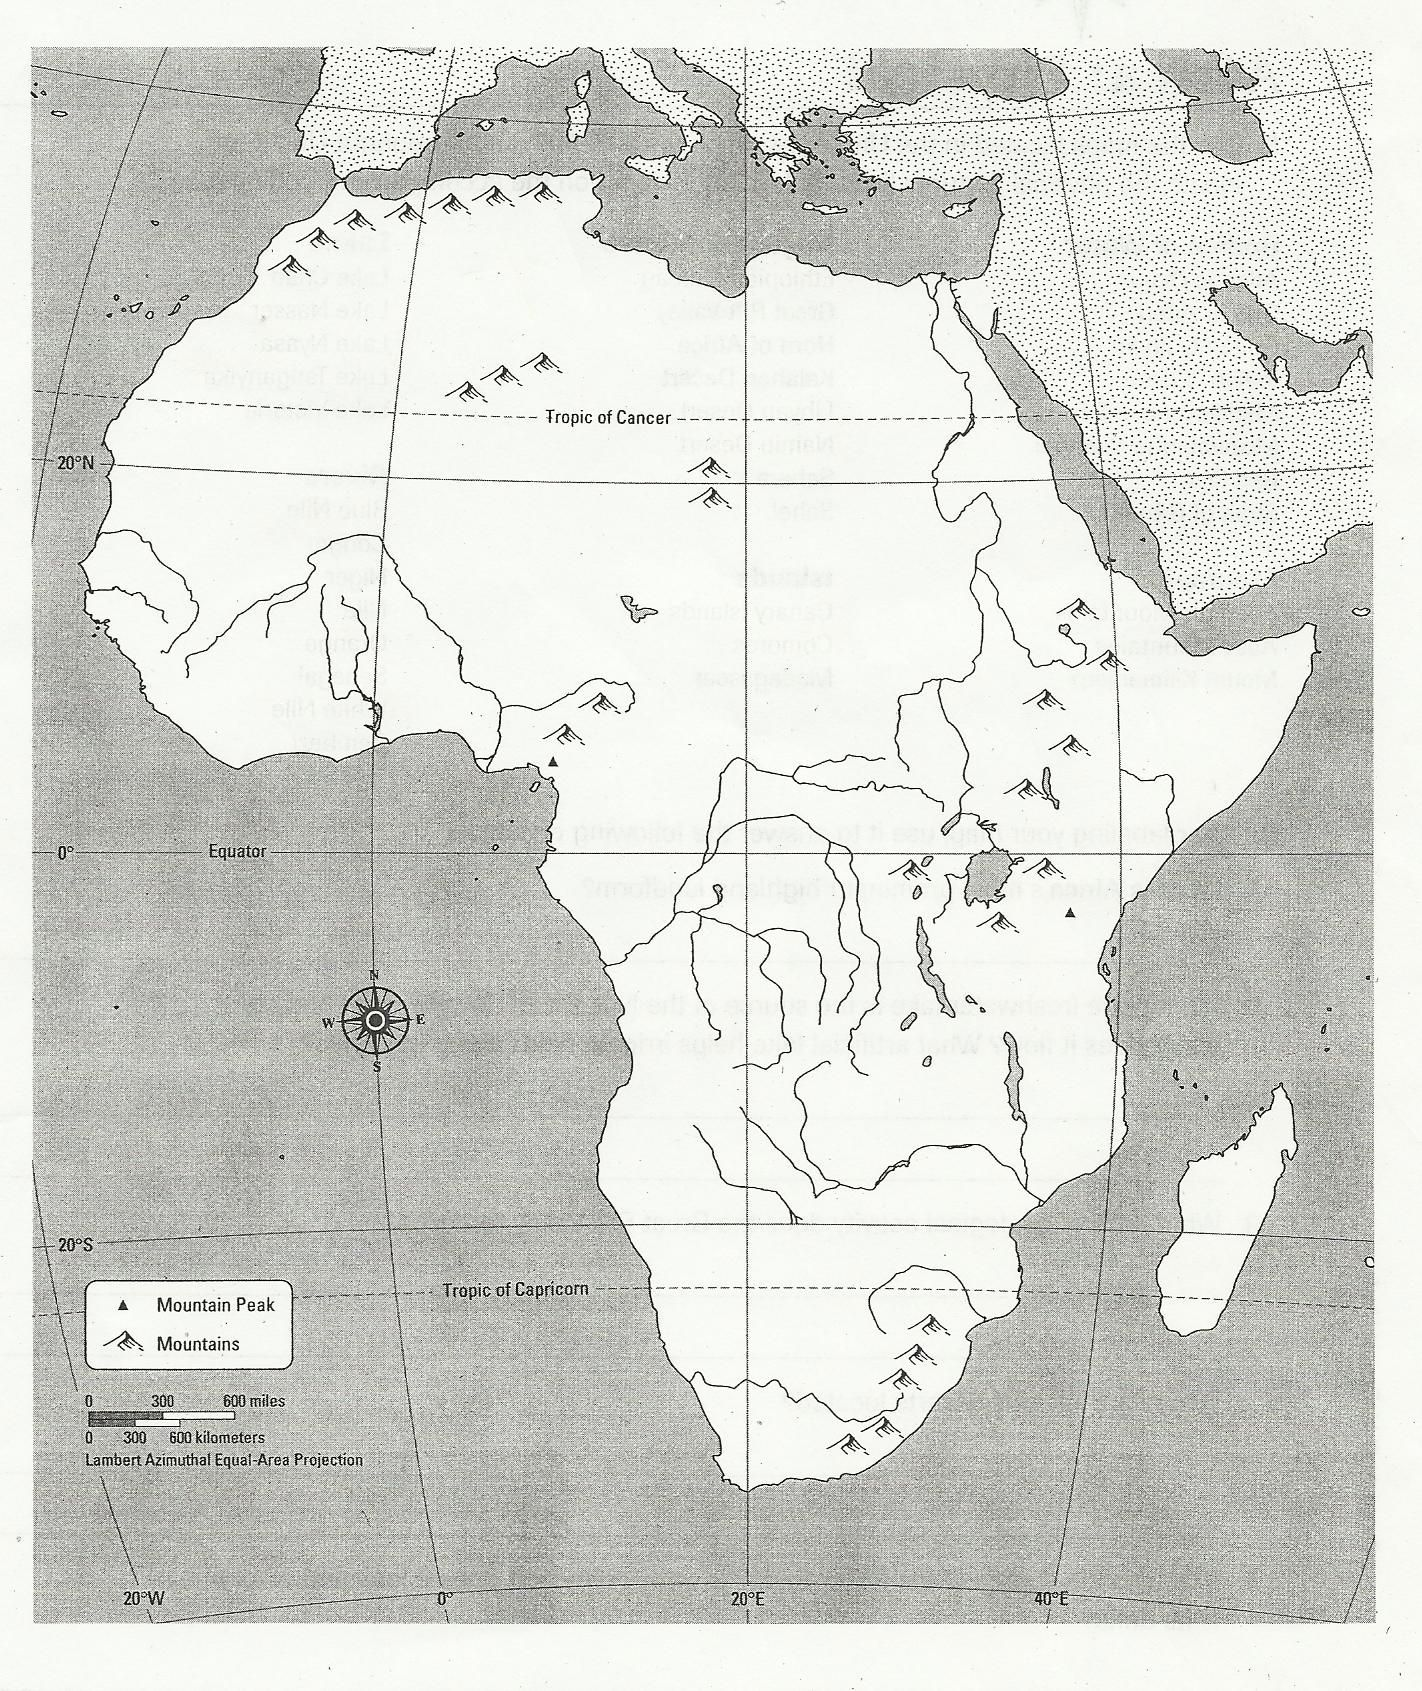 Blank Physical Map Of Africa New Calendar Template Africa Map Map Worksheets Physical Map In 2021 Africa Map Map Worksheets Physical Map